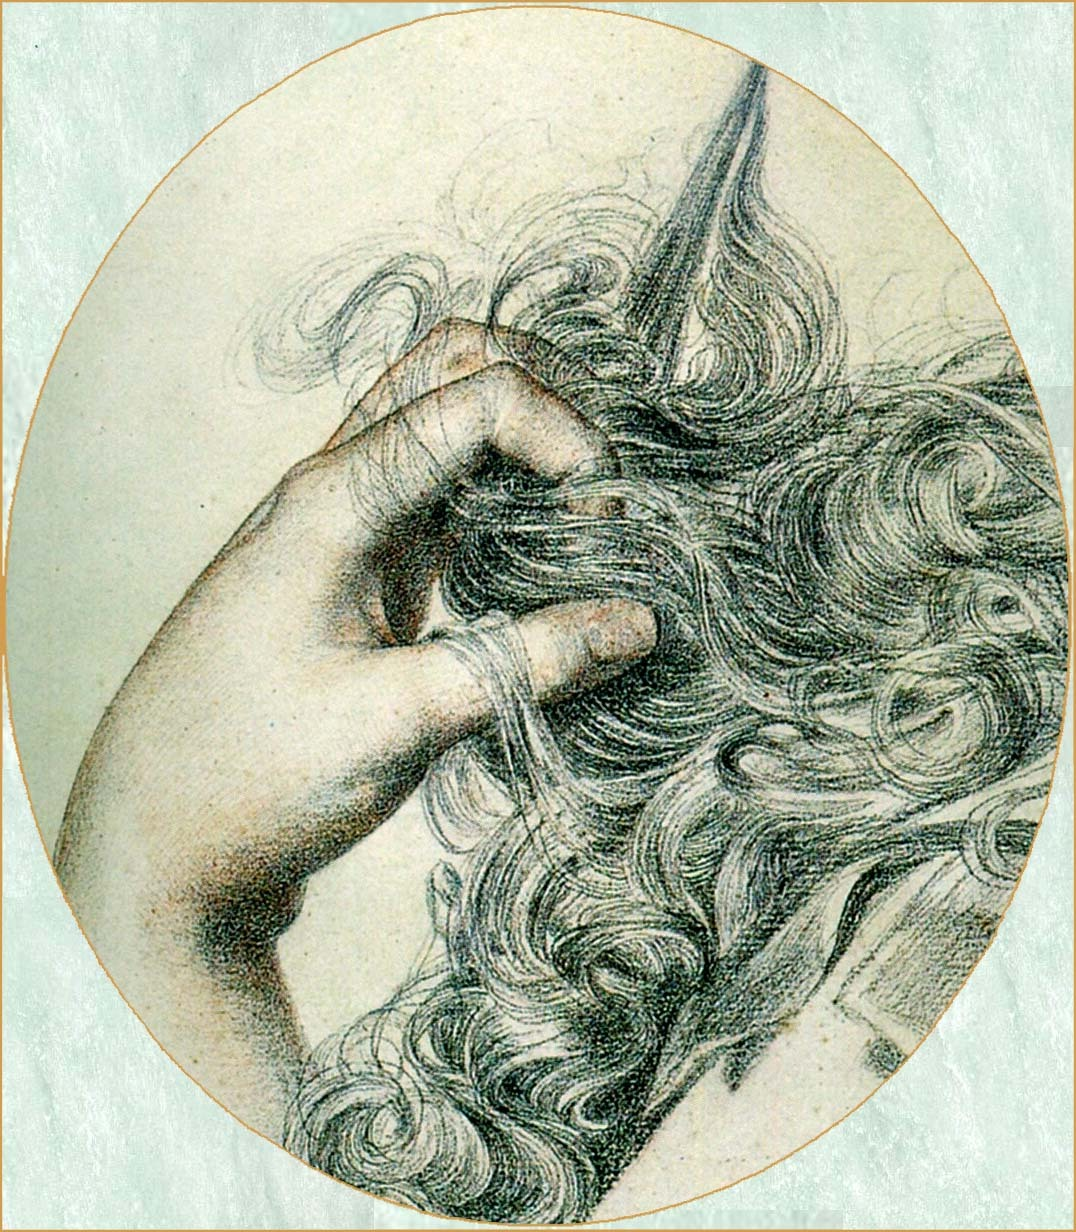 Frederick Sandys: Proud Maisie, 1868, detail, pencil and crayon on paper, Victoria and Albert Museum, London